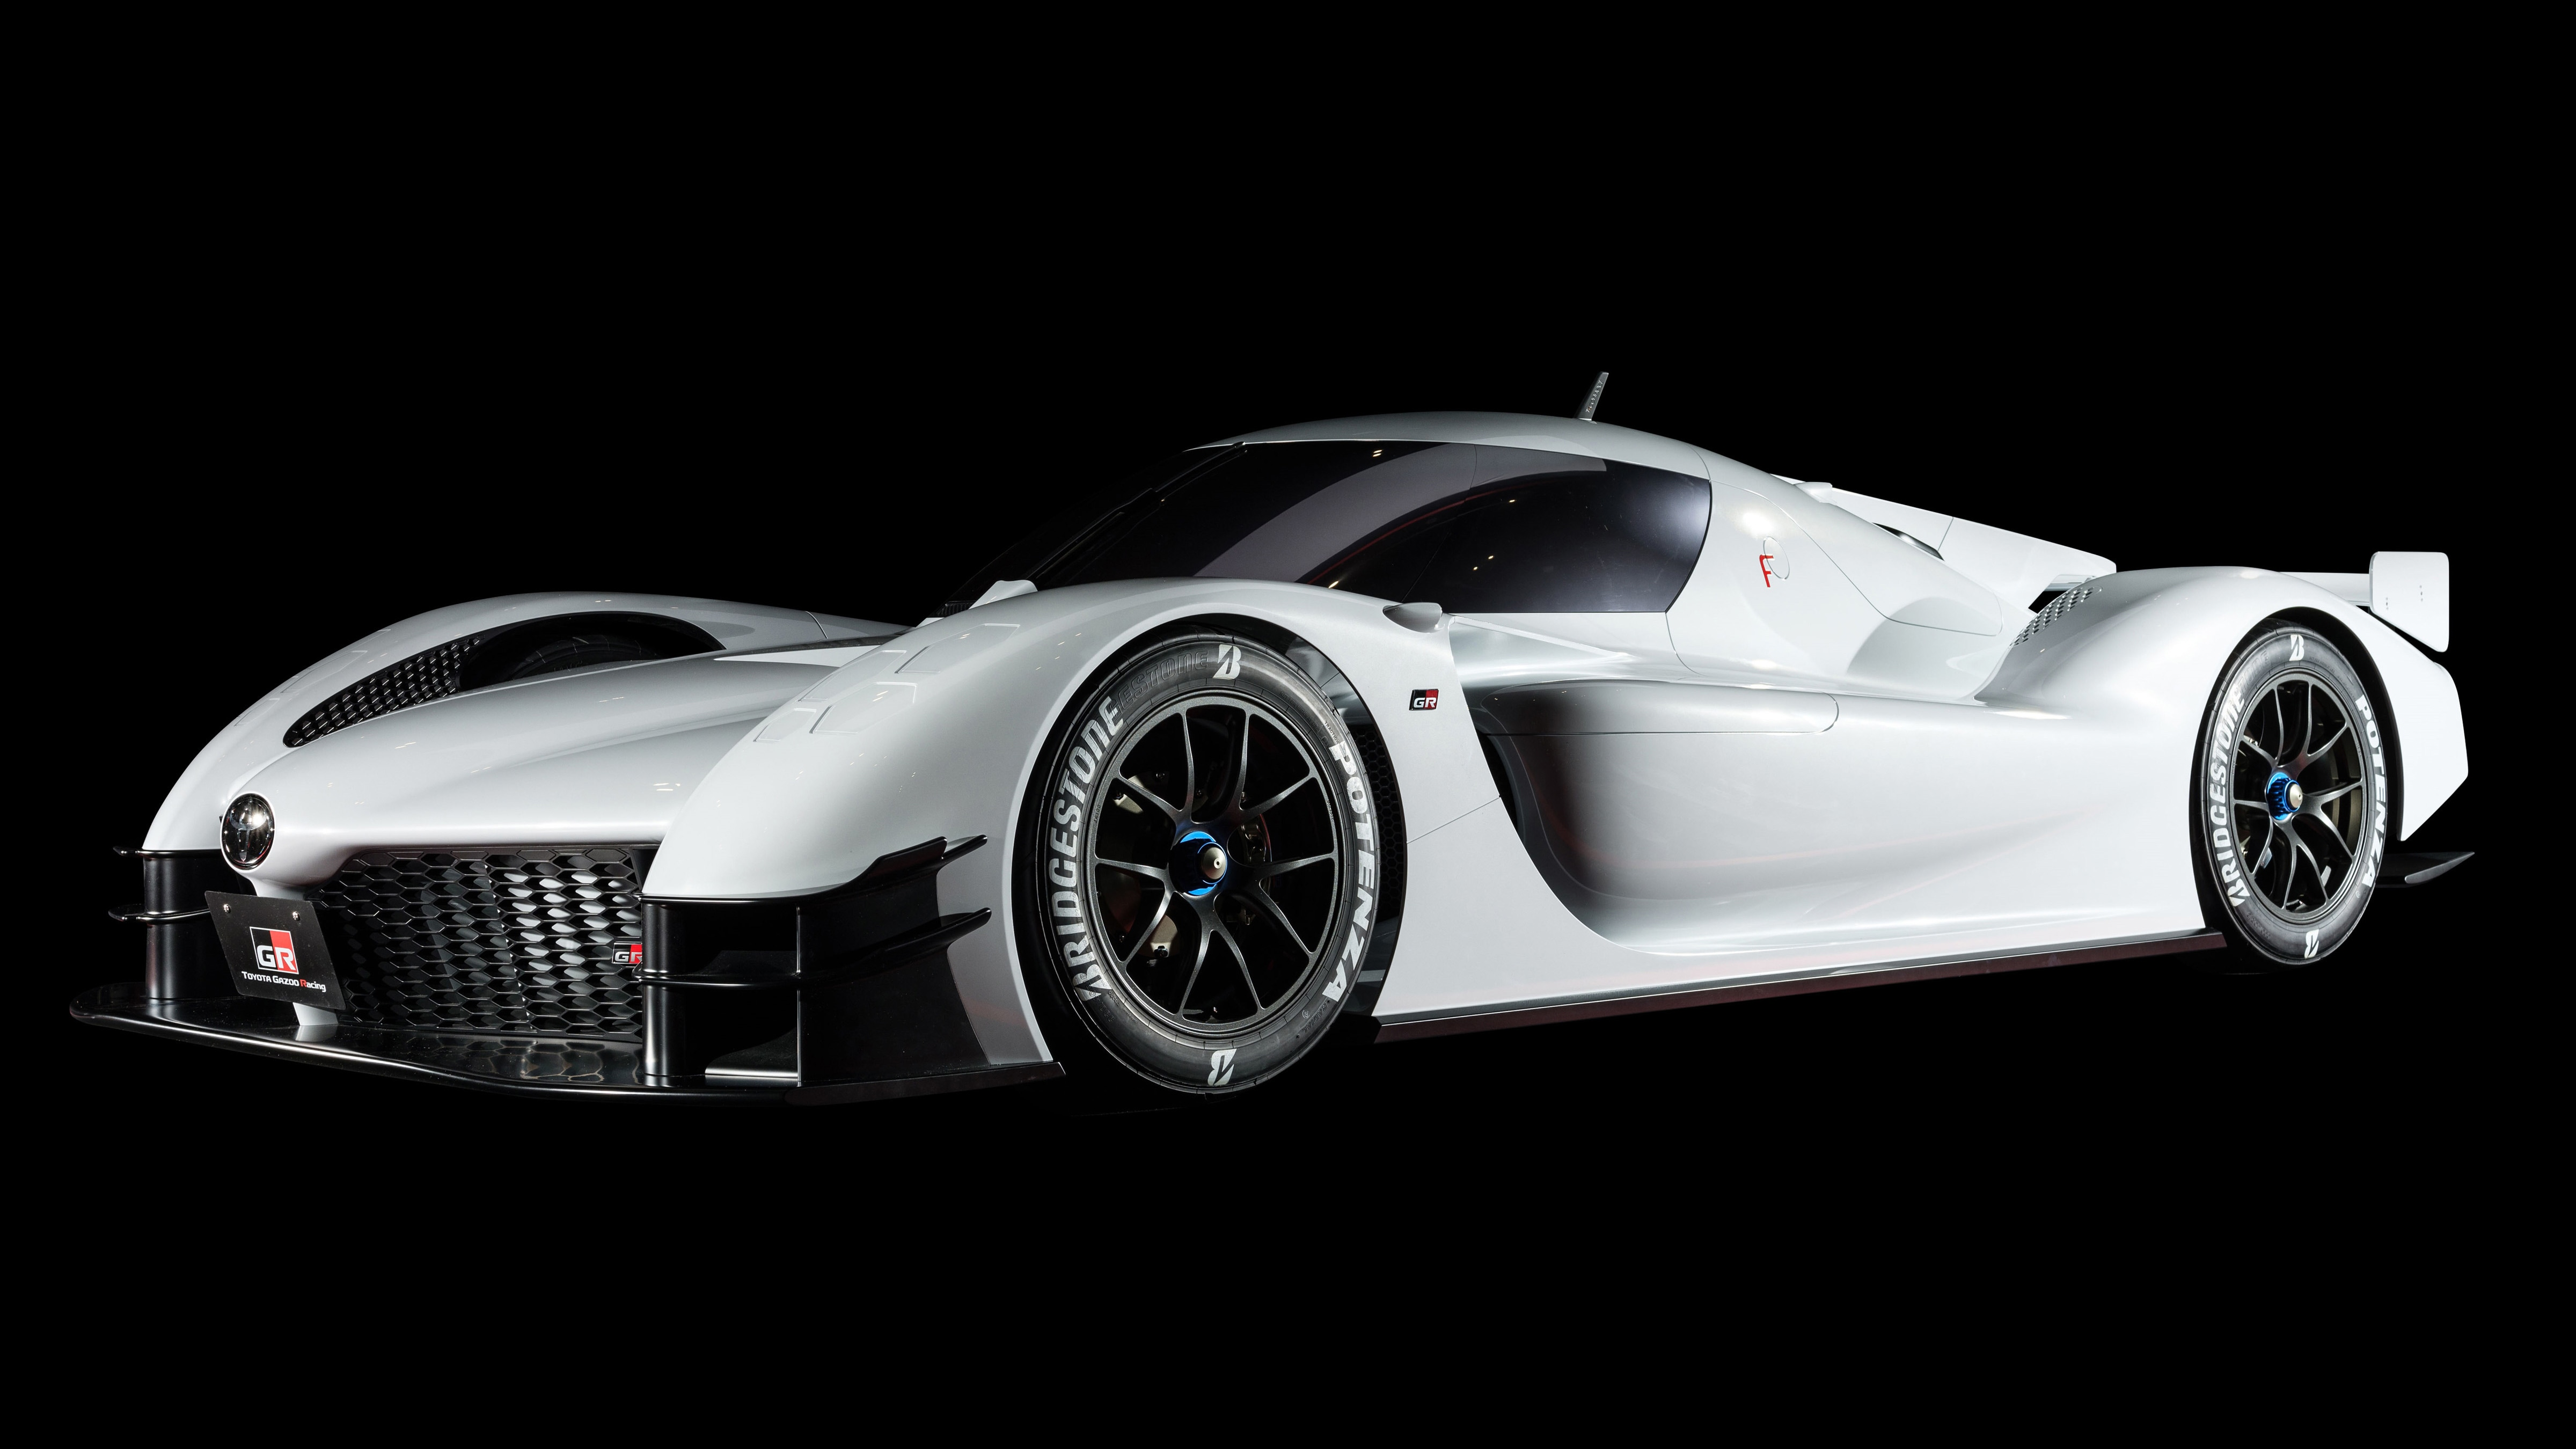 Toyota has Confirmed Development of a Road-going Hypercar 7